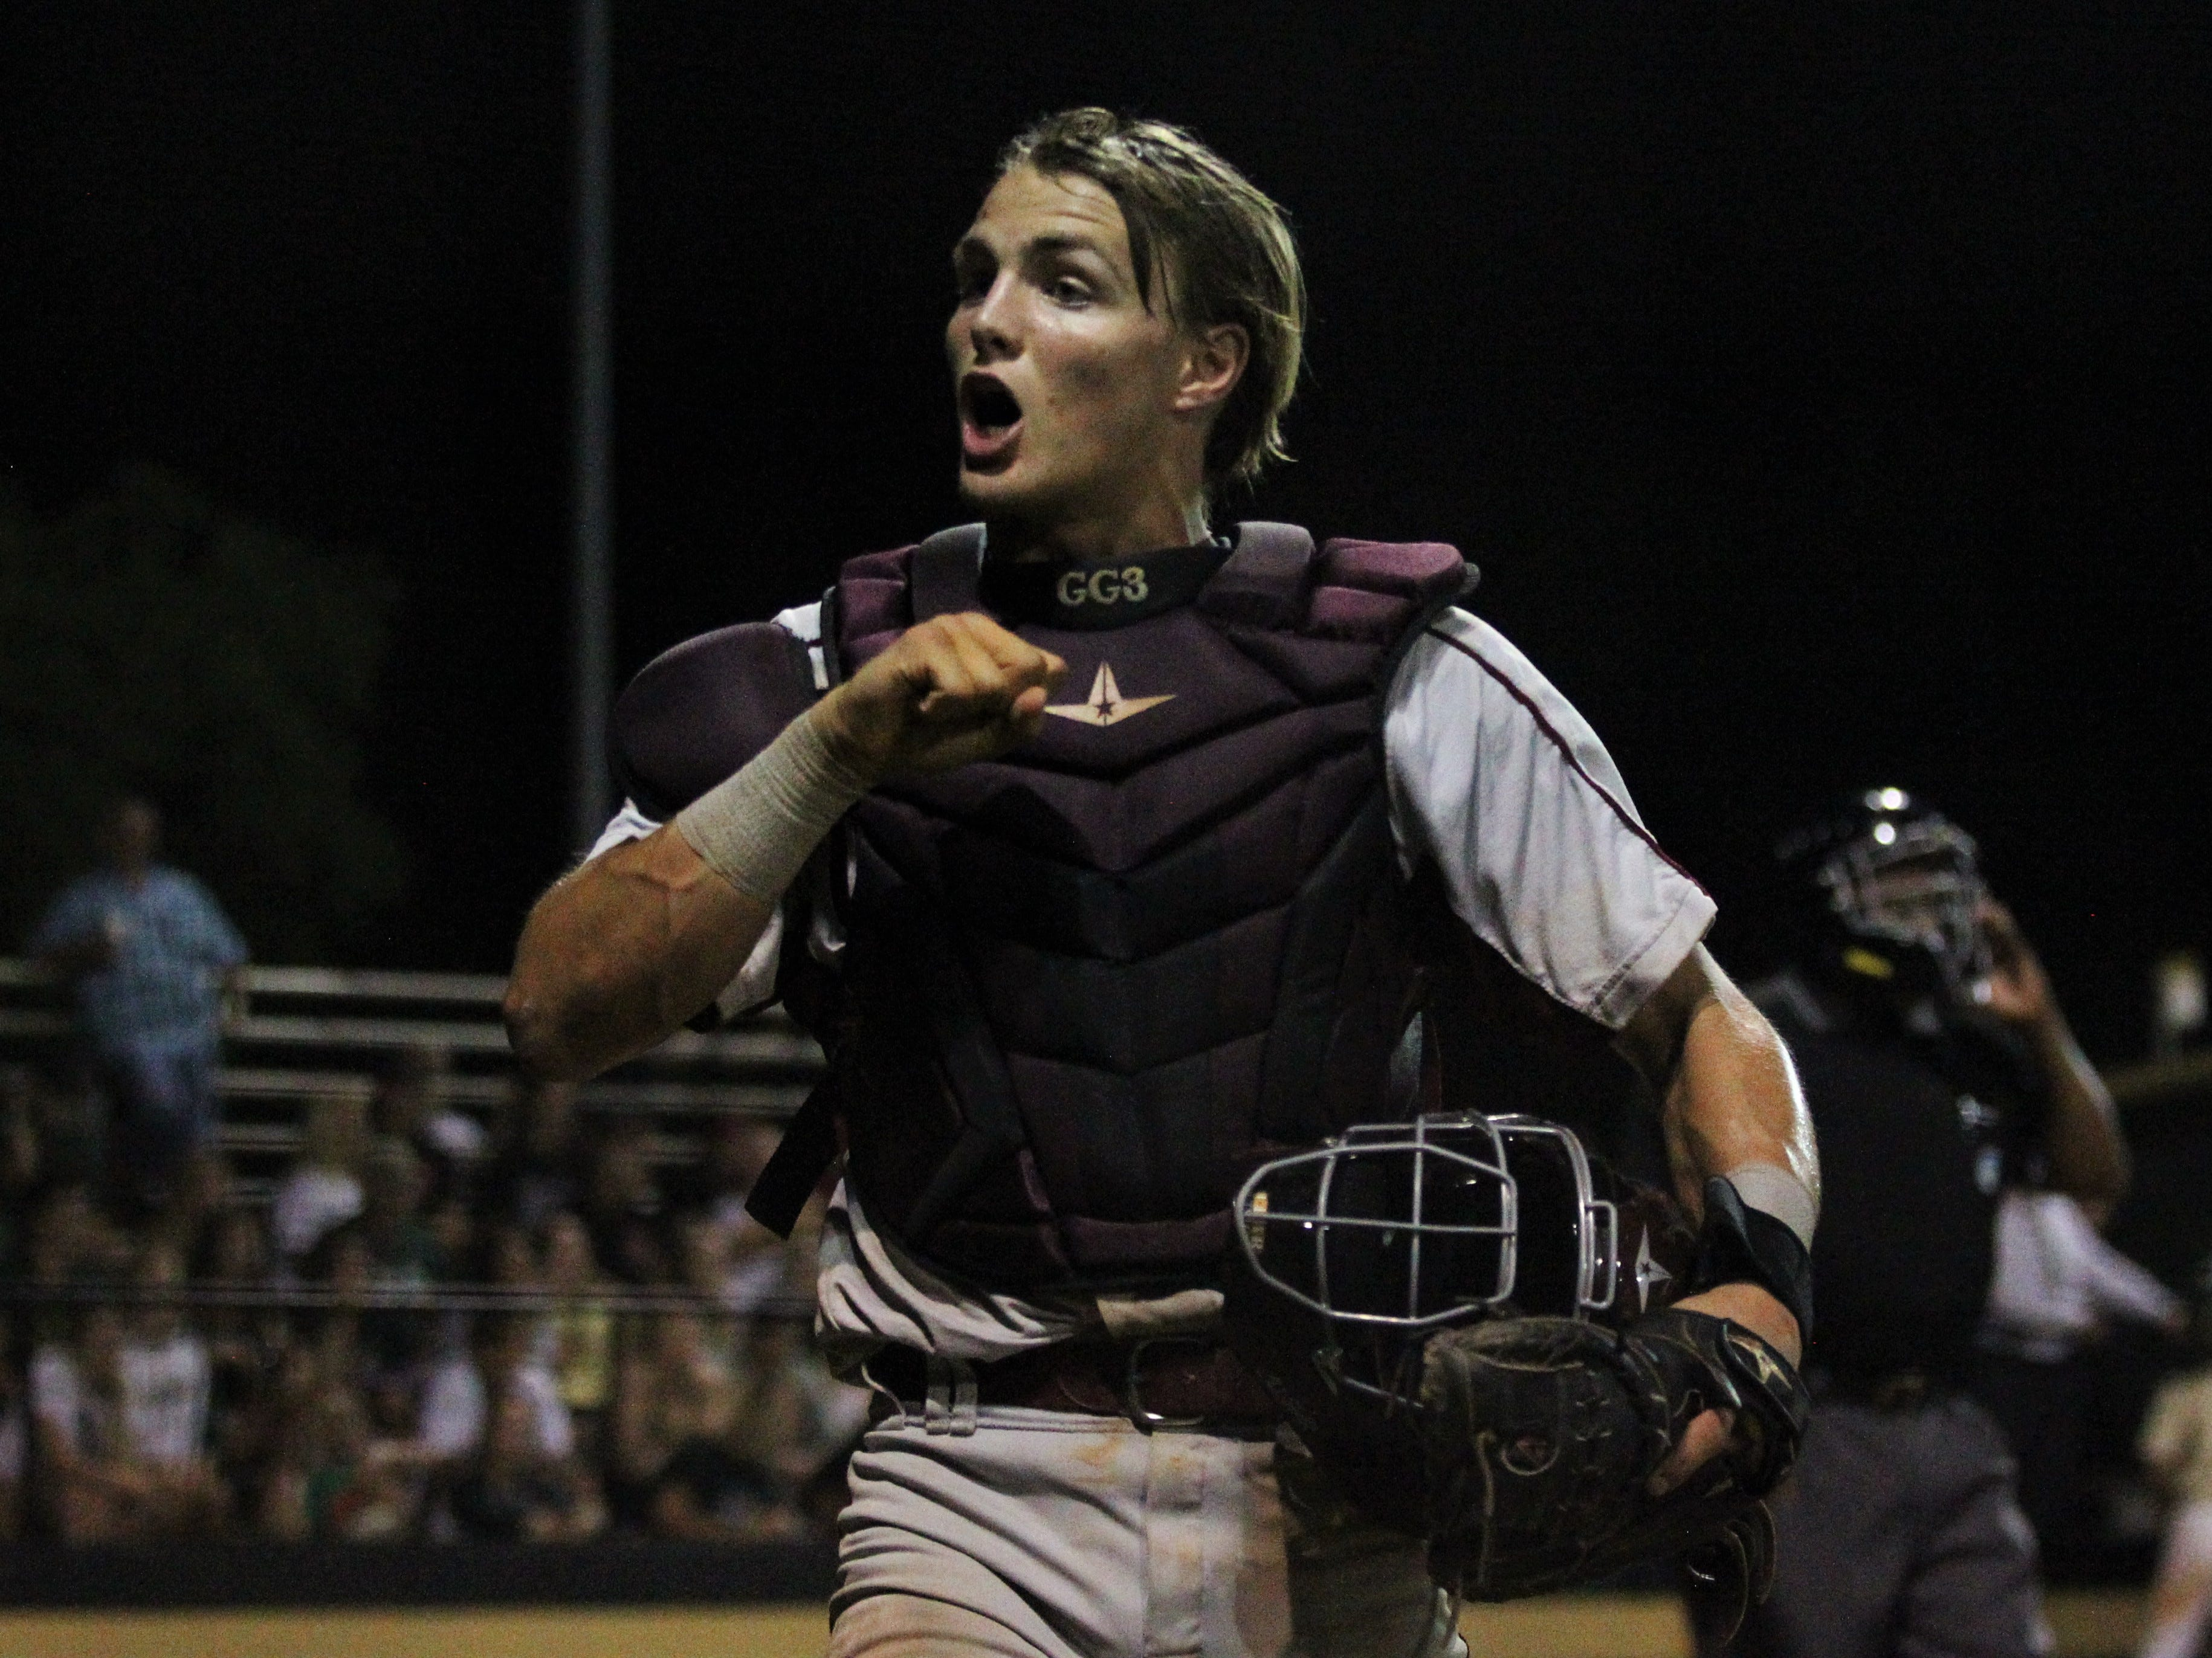 Chiles catcher Garrett Greene reacts after an inning-ending strikeout as Lincoln baseball beat Chiles 5-4  in 10 innings during a District 2-8A championship game on Thursday, May 9, 2019.